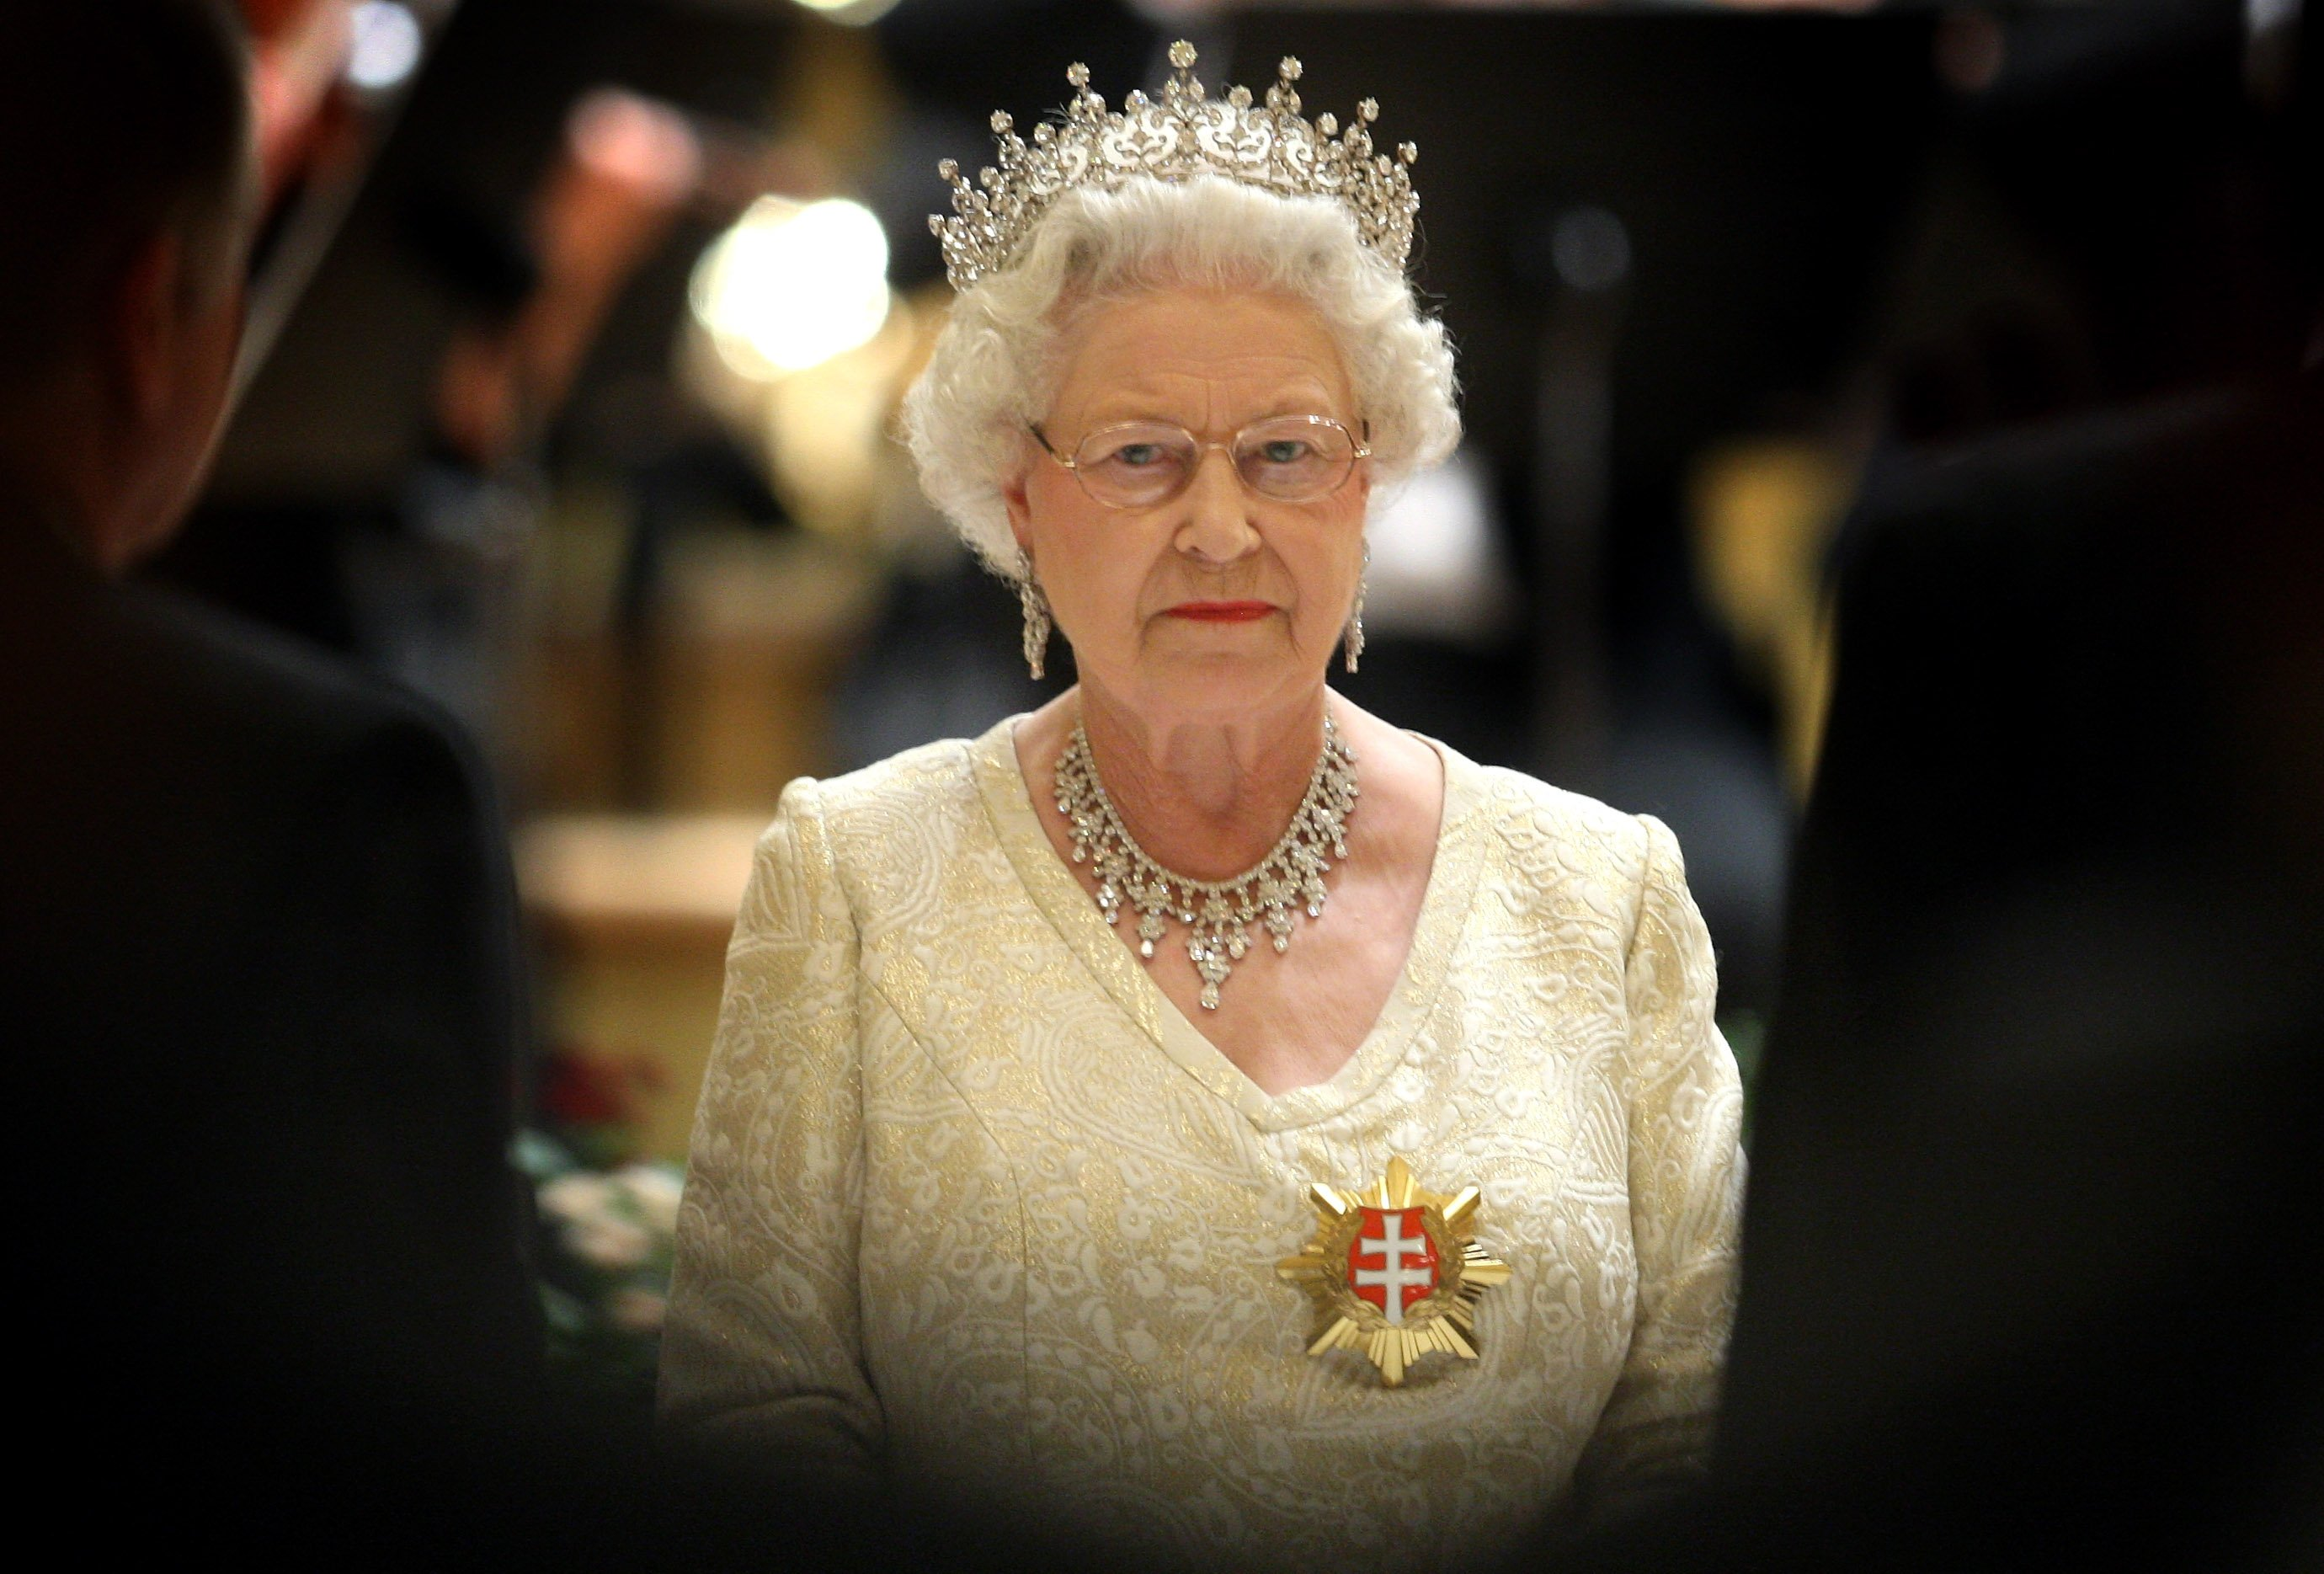 Queen Elizabeth II pictured at a State Banquet at the Philharmonic Hall on the first day of a tour of Slovakia, 2008, Bratislava, Slovakia.   Photo: Getty Images